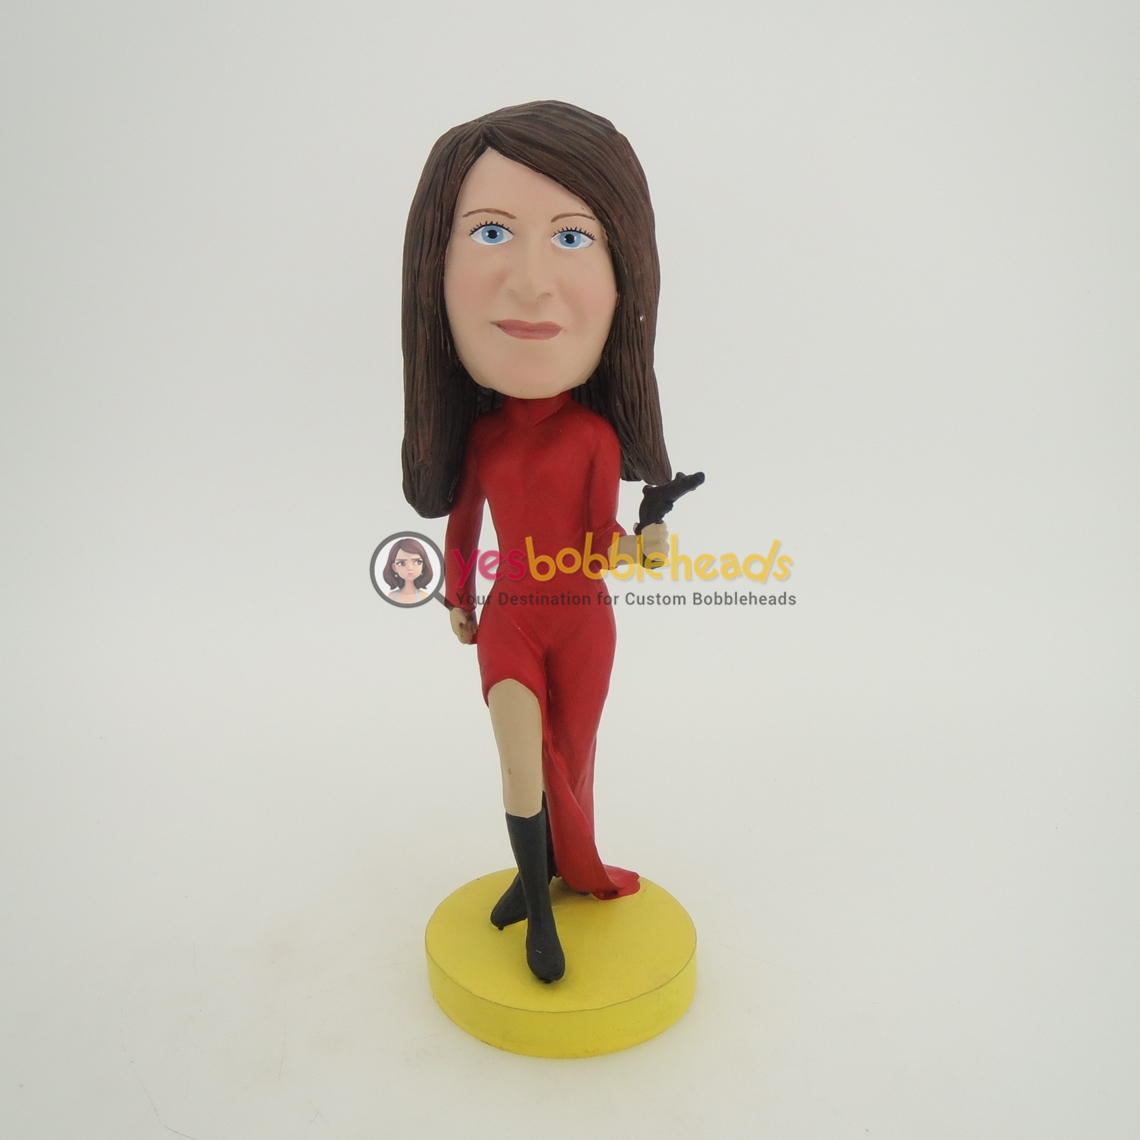 Picture of Custom Bobblehead Doll: Woman with Handgun